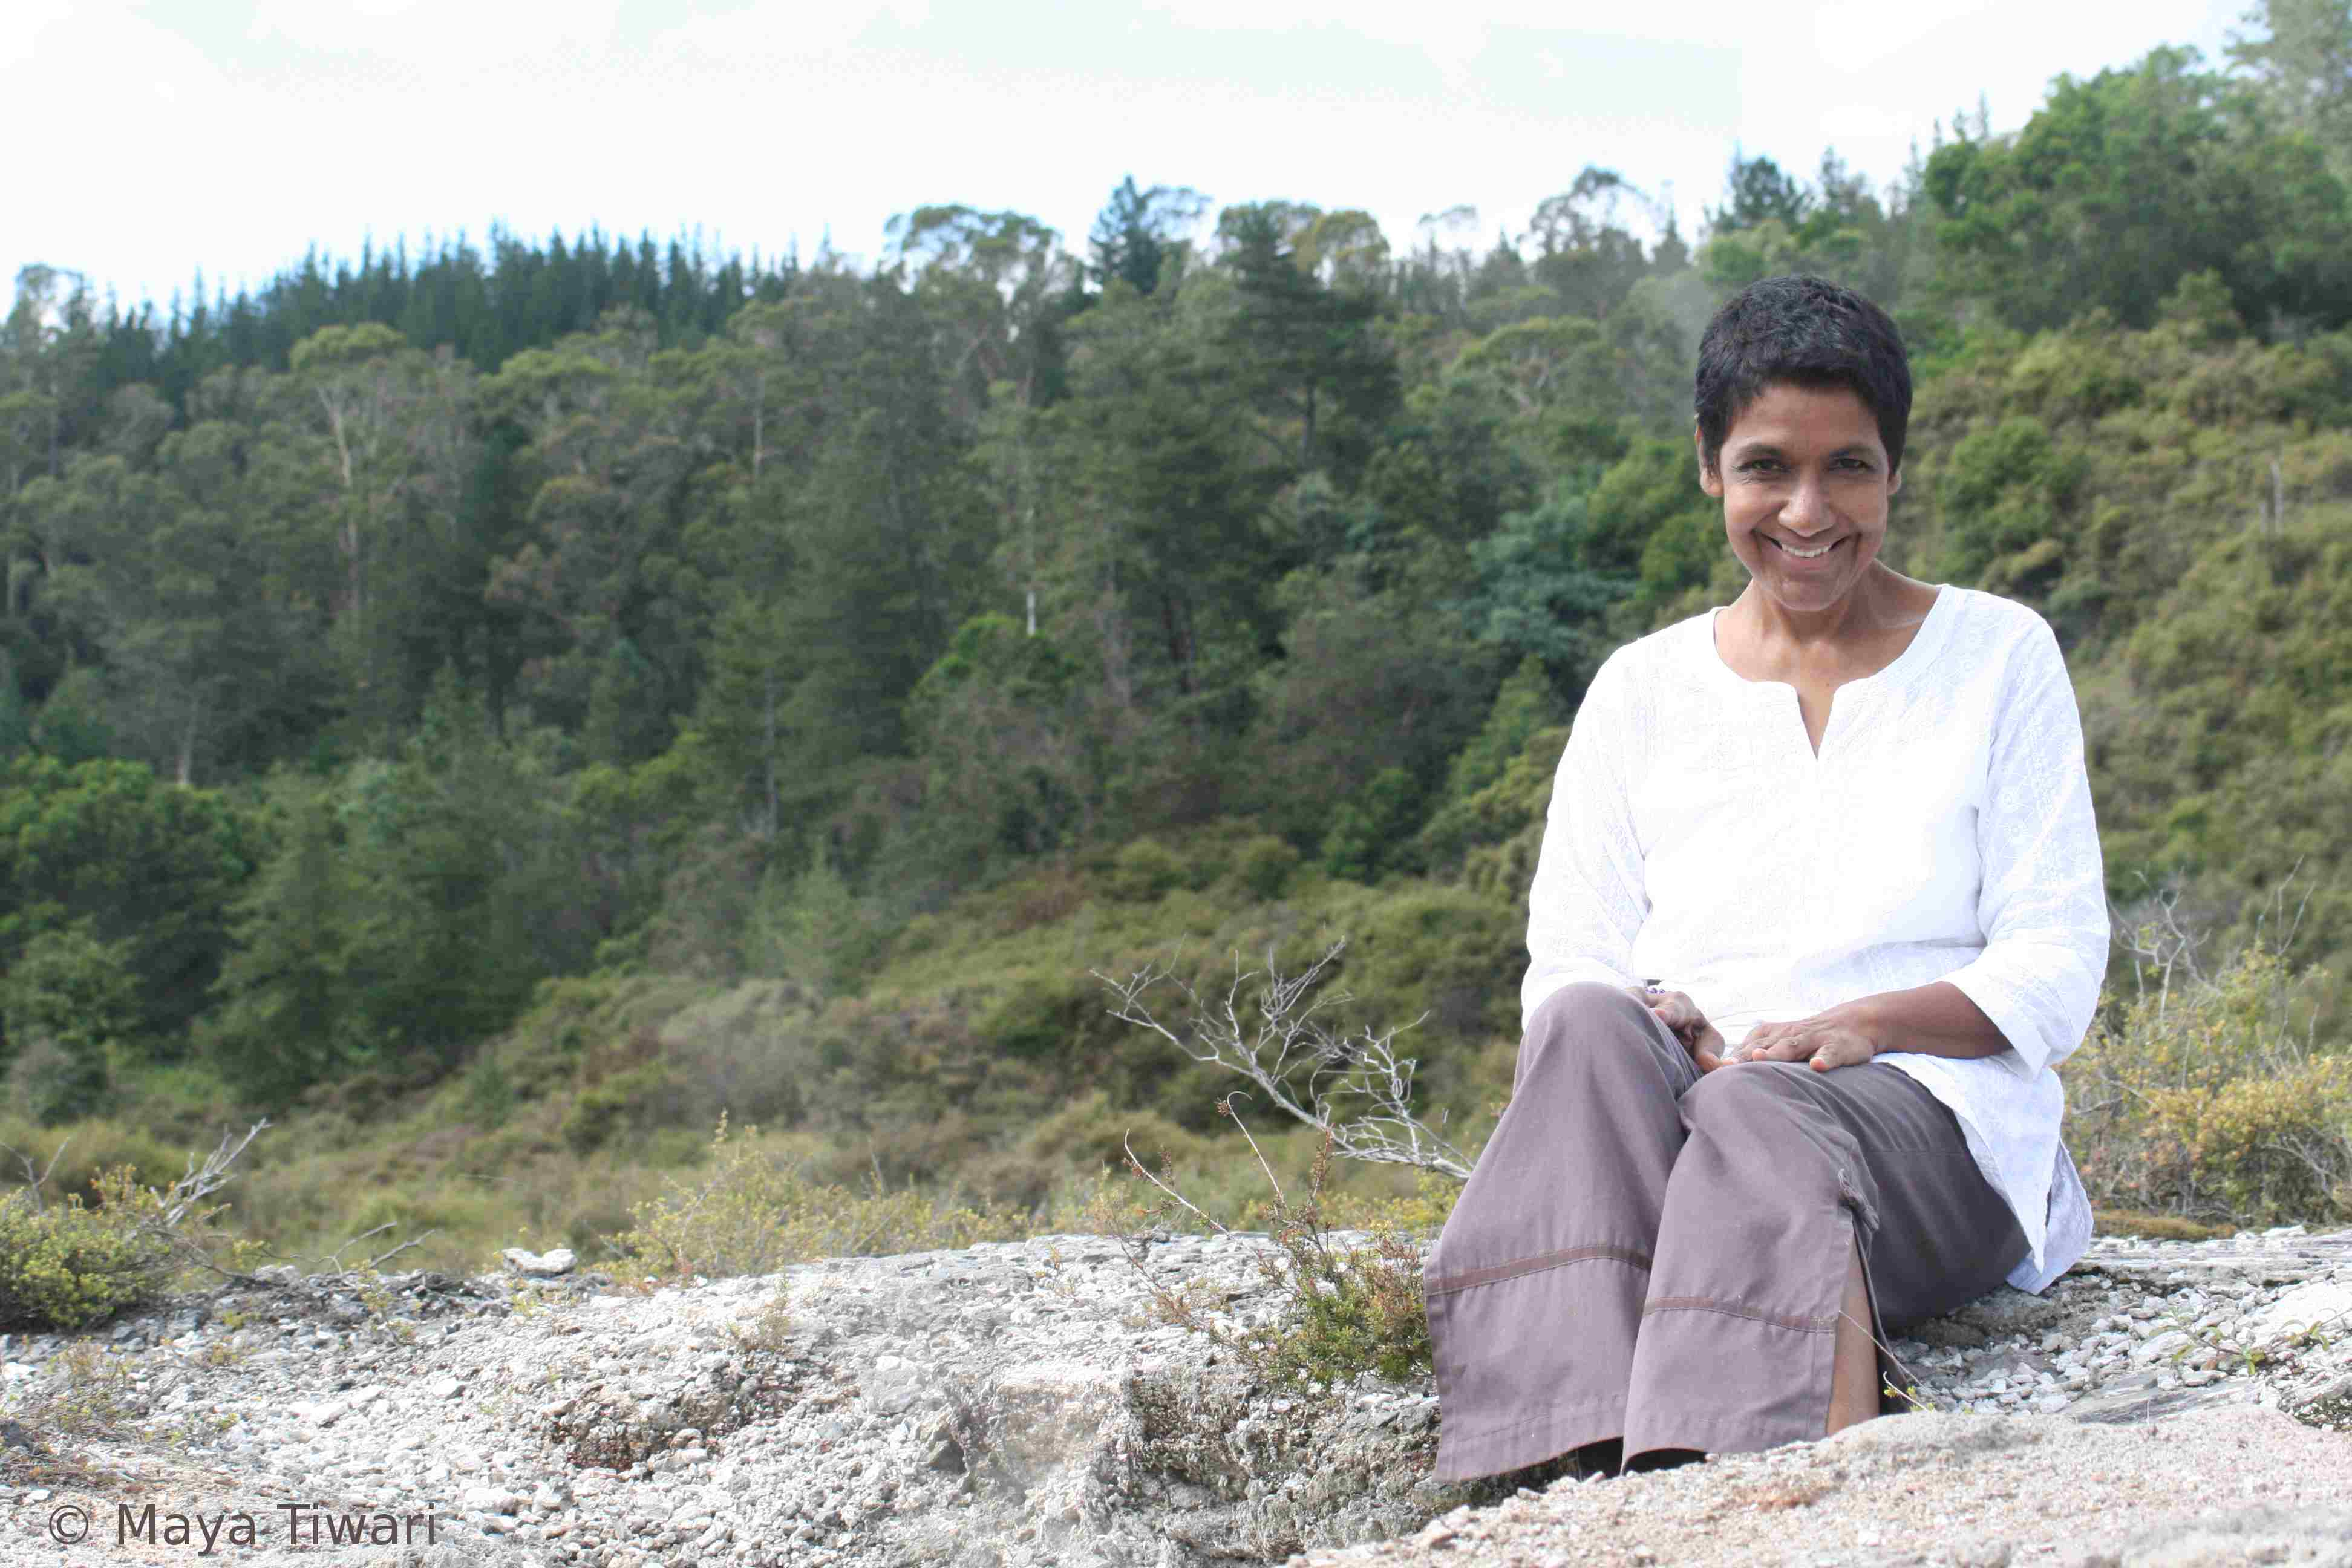 Mata Tiwari in Rotoria, New Zealand 2012